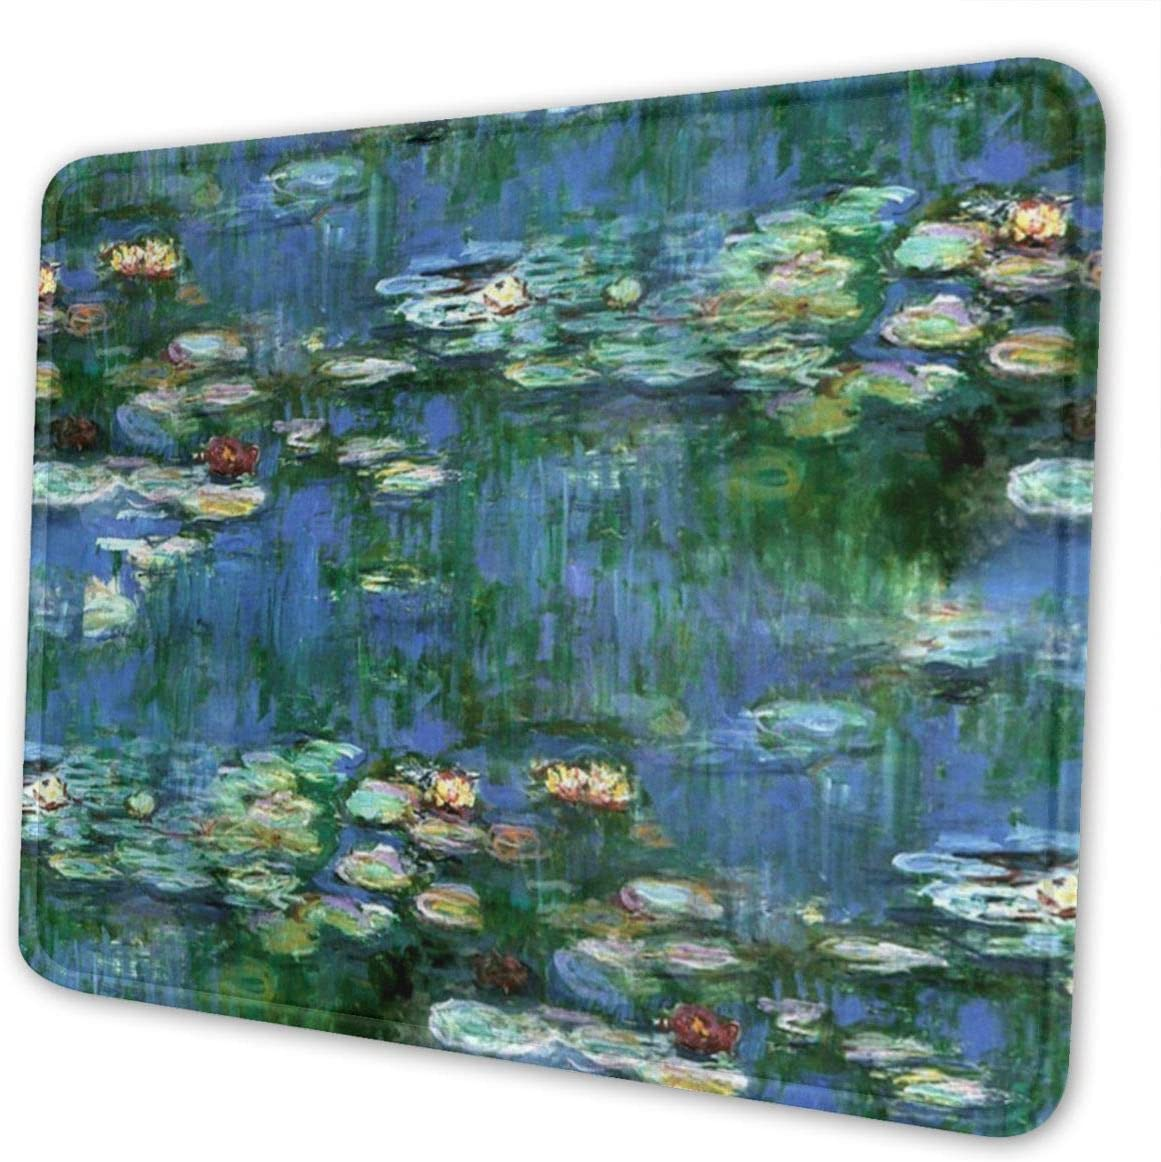 Mouse Pad Lilies Claude Monet Water Lilies Premium Gaming Mat Non-Slip Rubber Base for Computers Laptop Office Desk Accessories 10×12 Inches